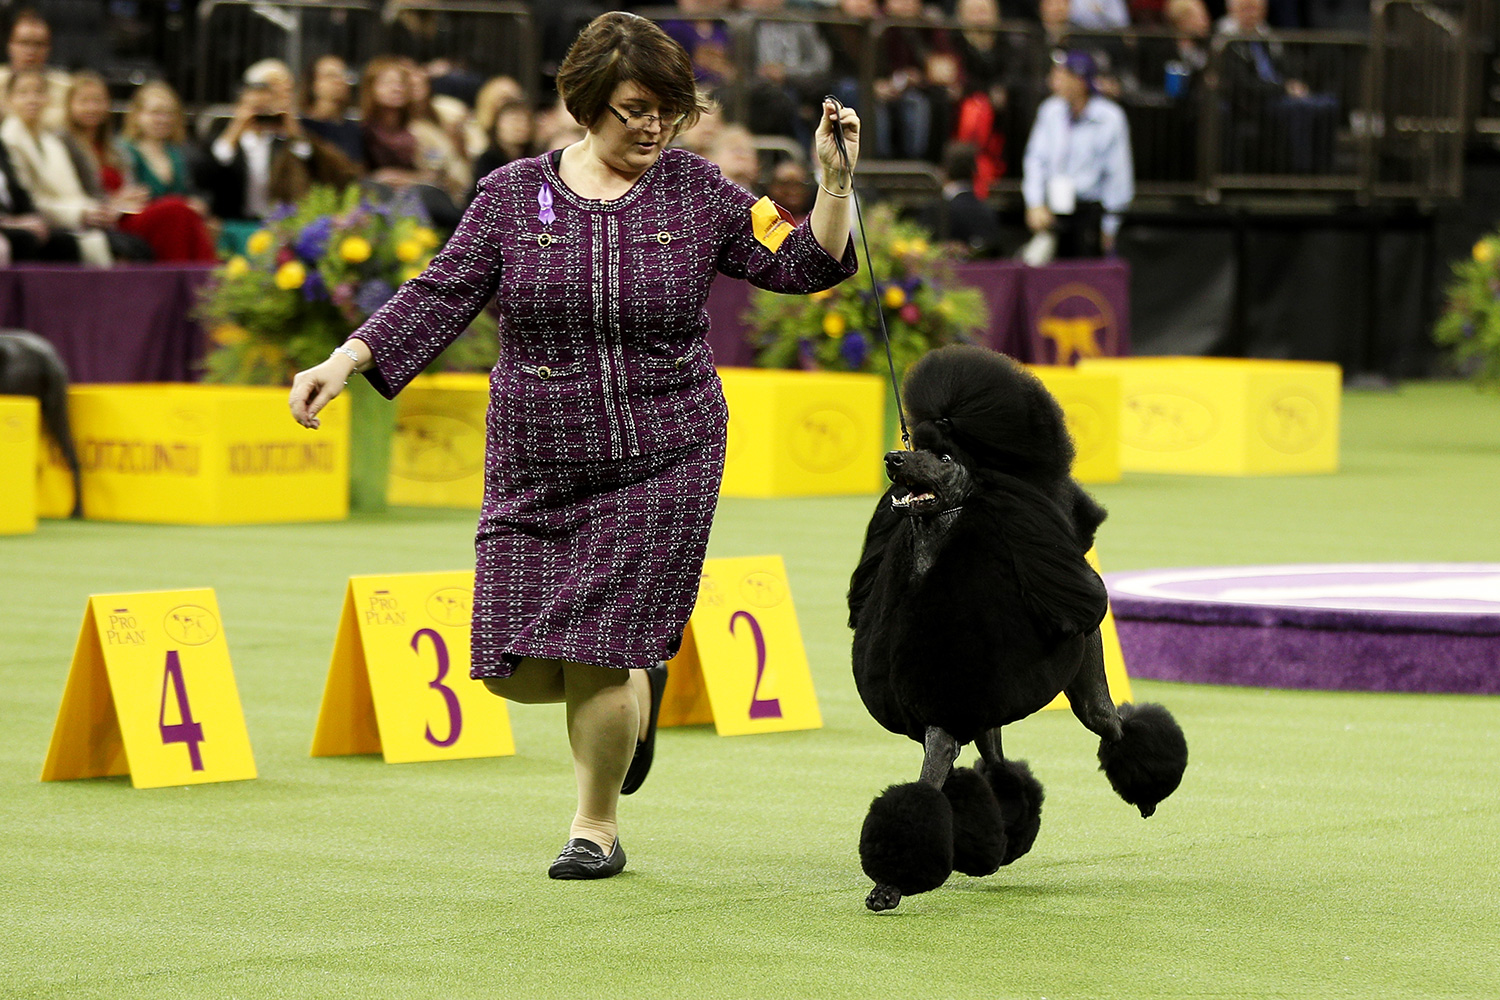 Poodle at Westminster Kennel Club Dog Show